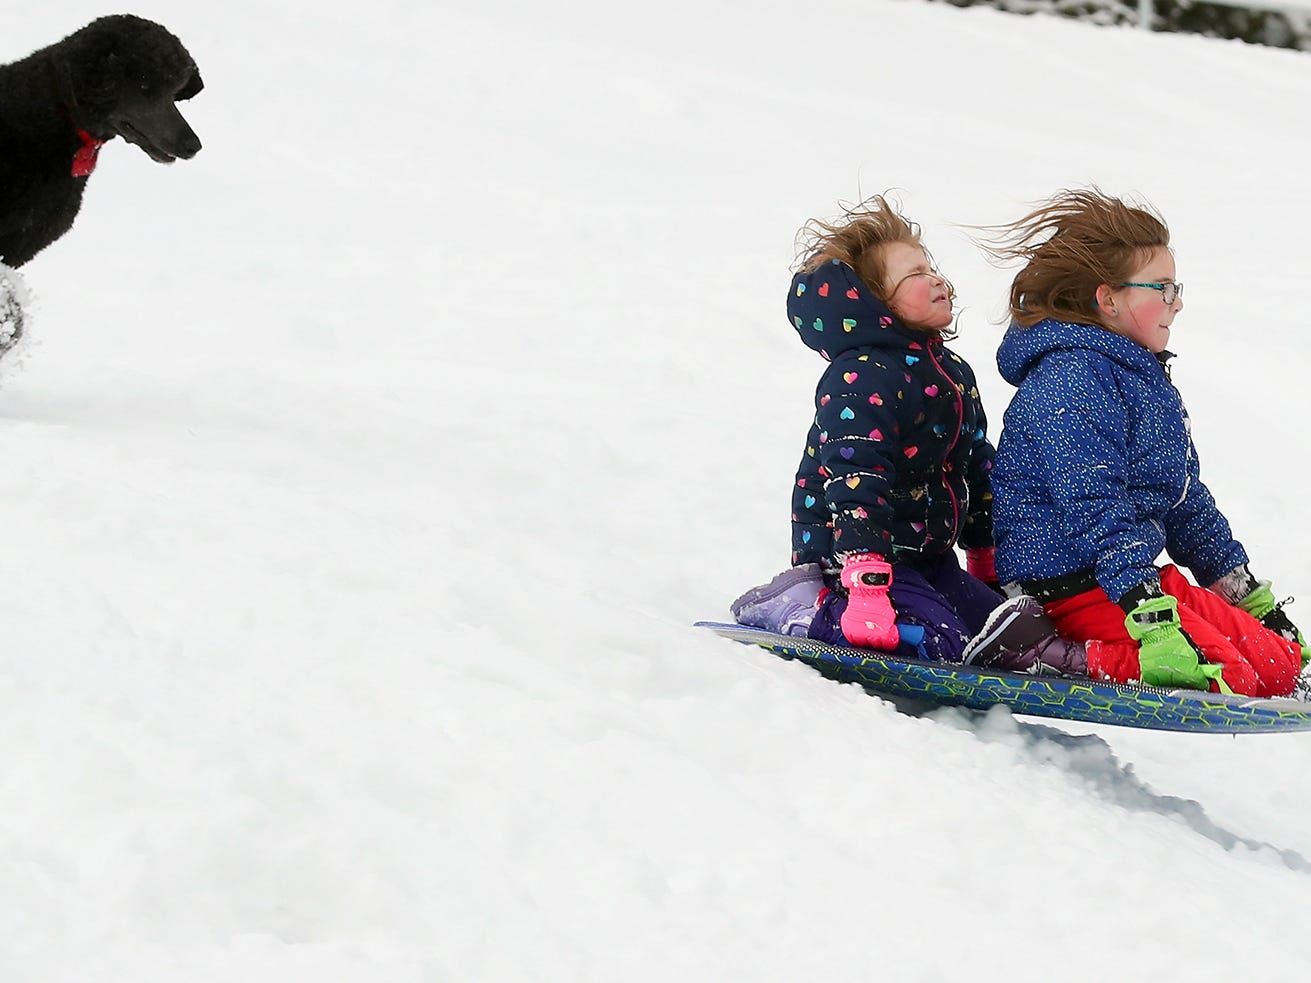 Charlotte O'Hara, 5, and sister Eleanor, 7, sled down the hill followed closely behind by their dog Teddy at Silver Ridge Elementary School in Silverdale on on Saturday, February 9, 2019.